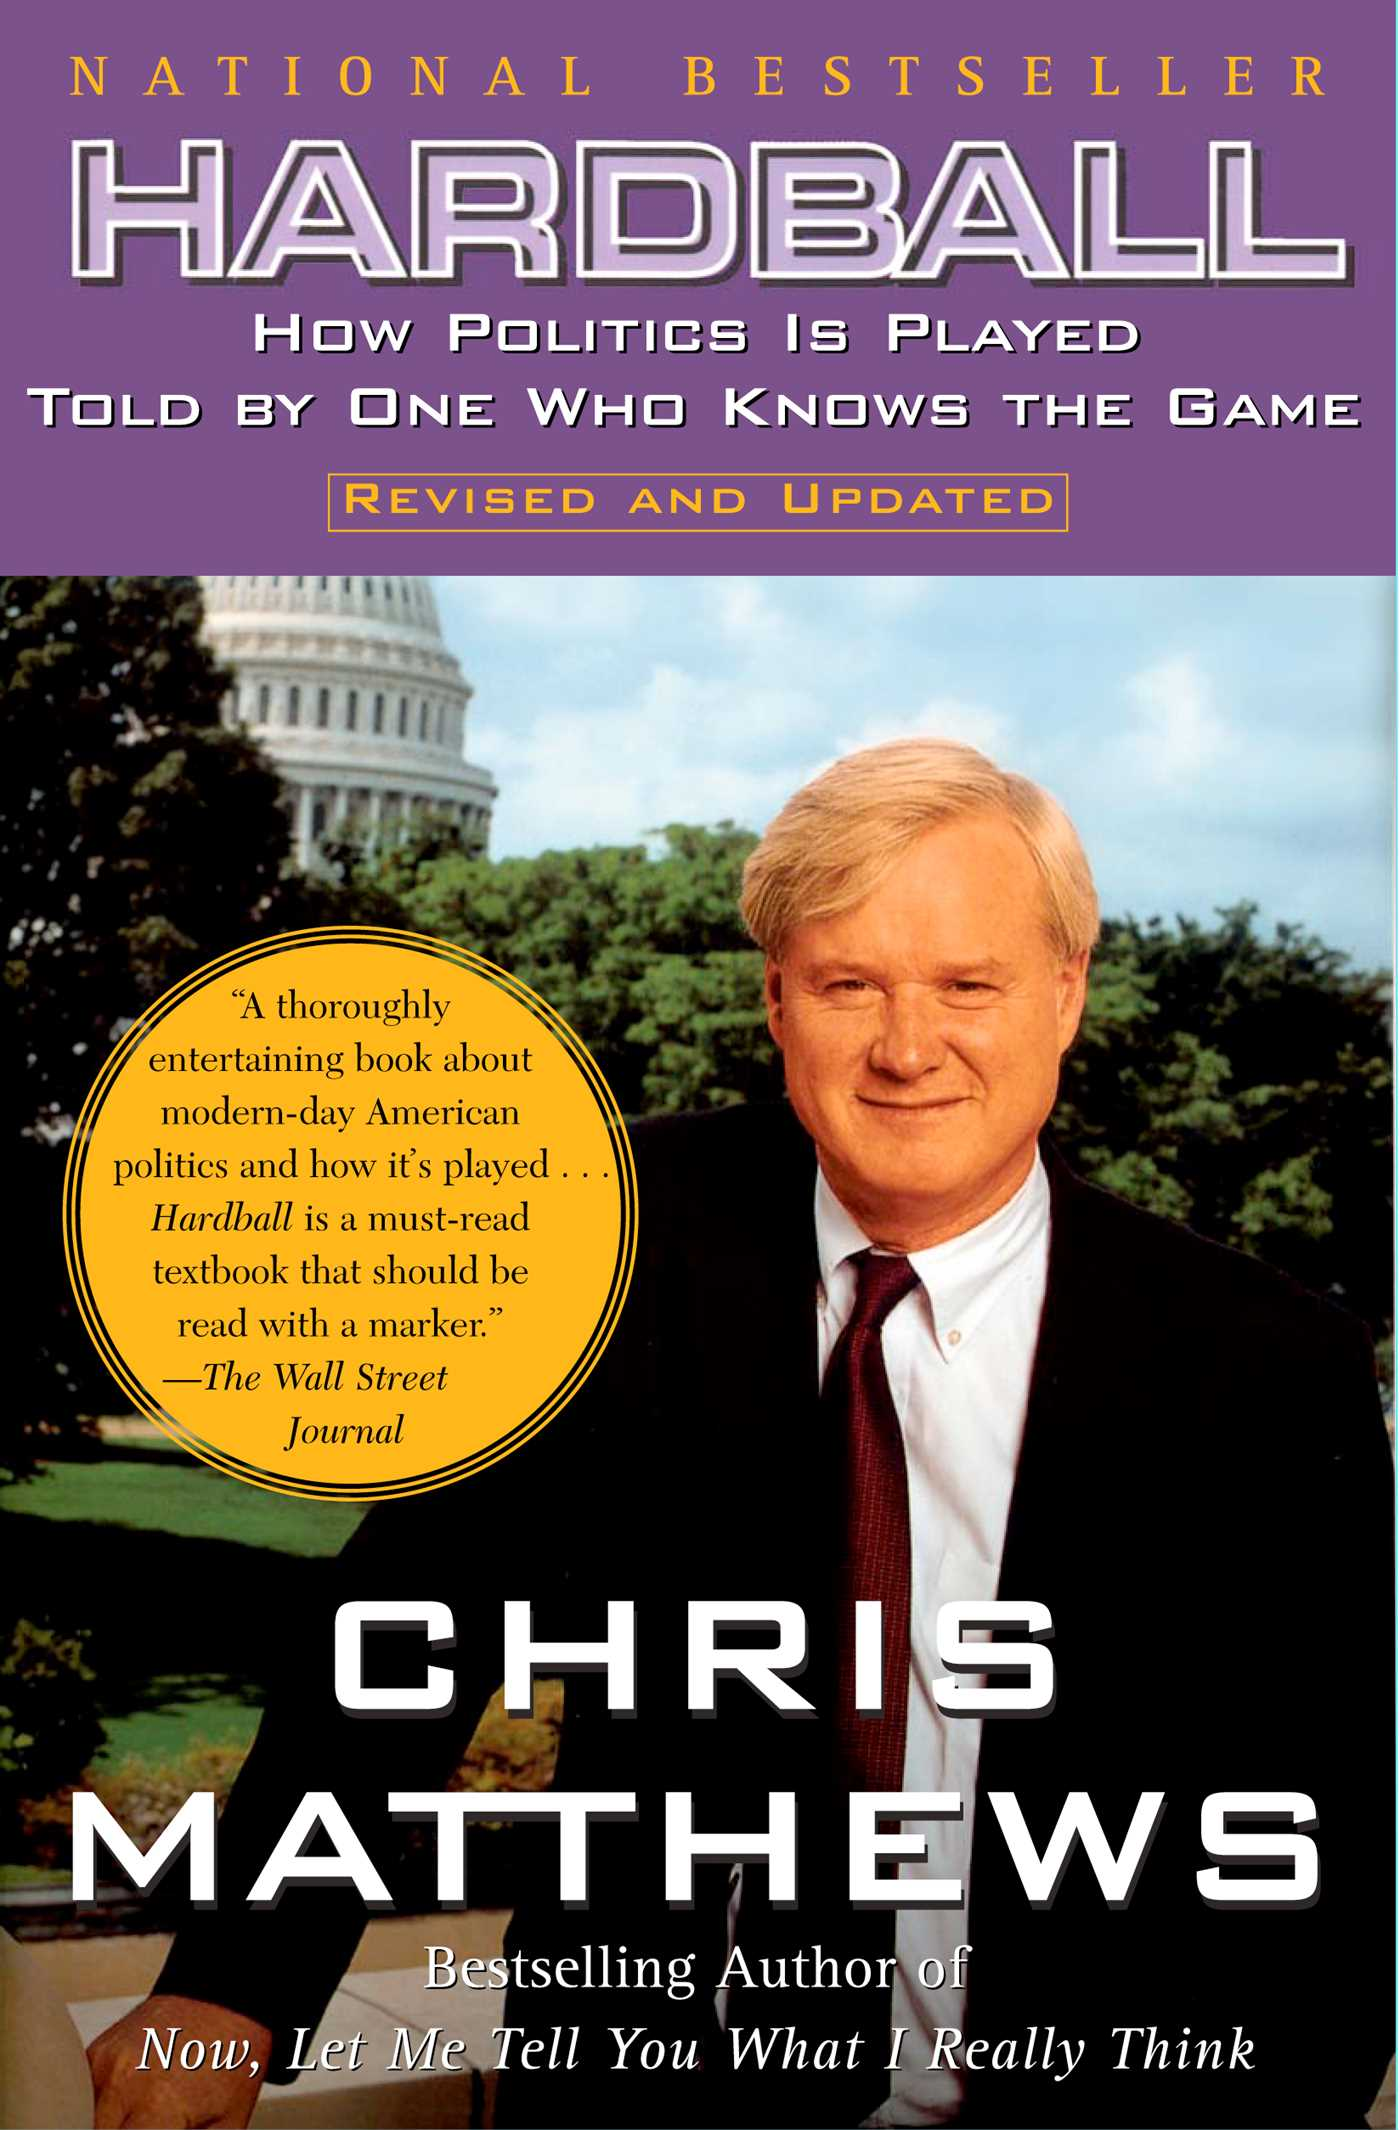 hardball chris matthews Guests on msnbc show hardball have contributed more than $79,000 to host chris matthews' wife, kathleen, who is running as a democrat for congress in maryland's eighth district.